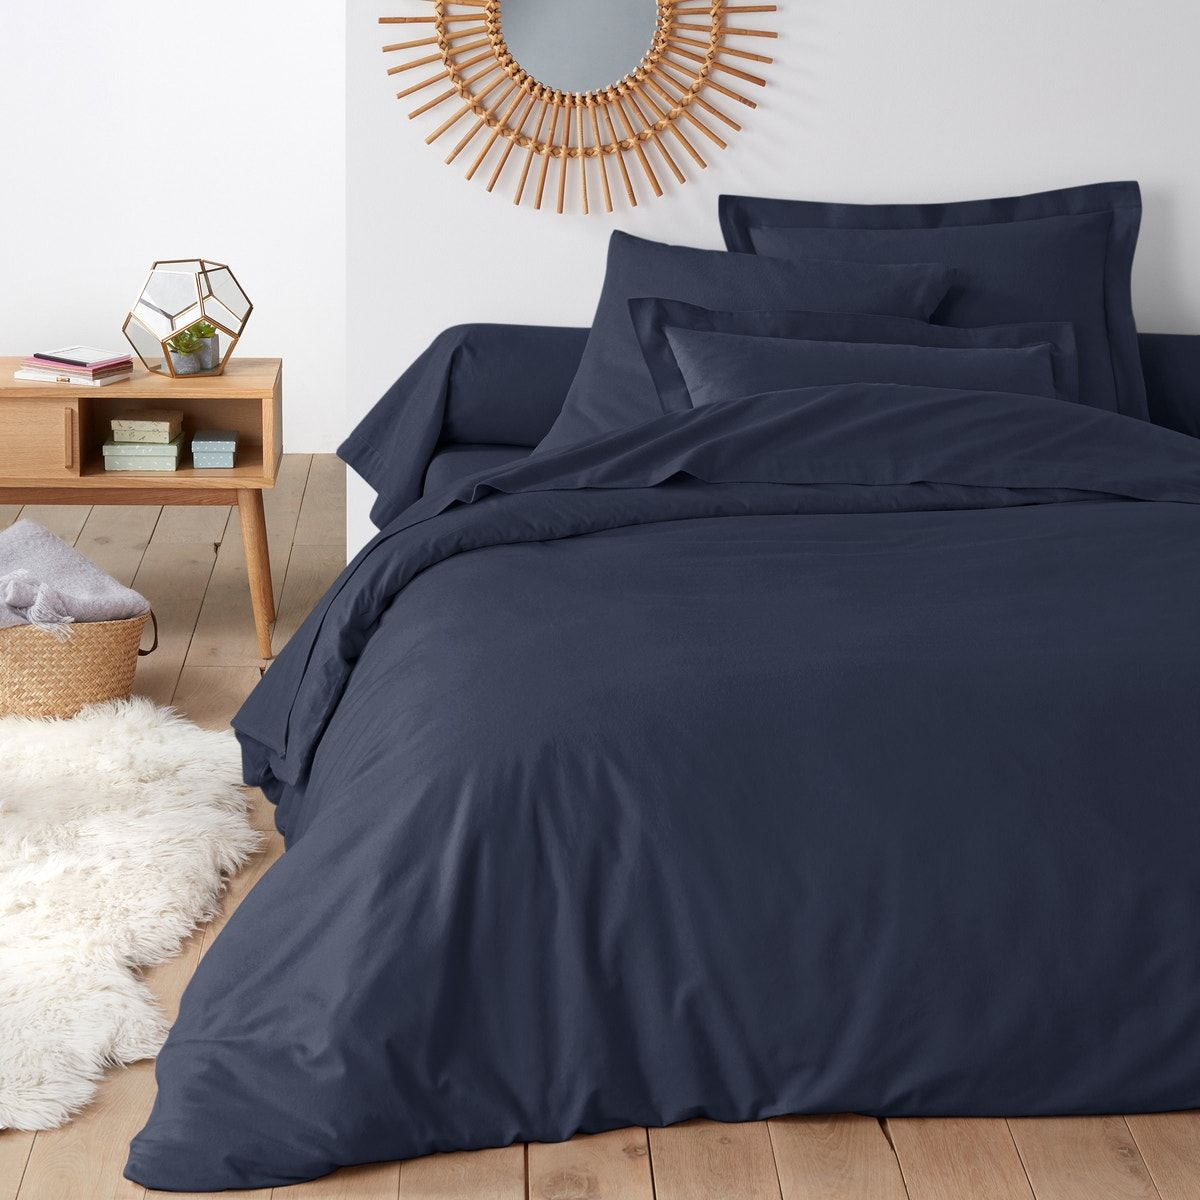 A set of bedding products that can be